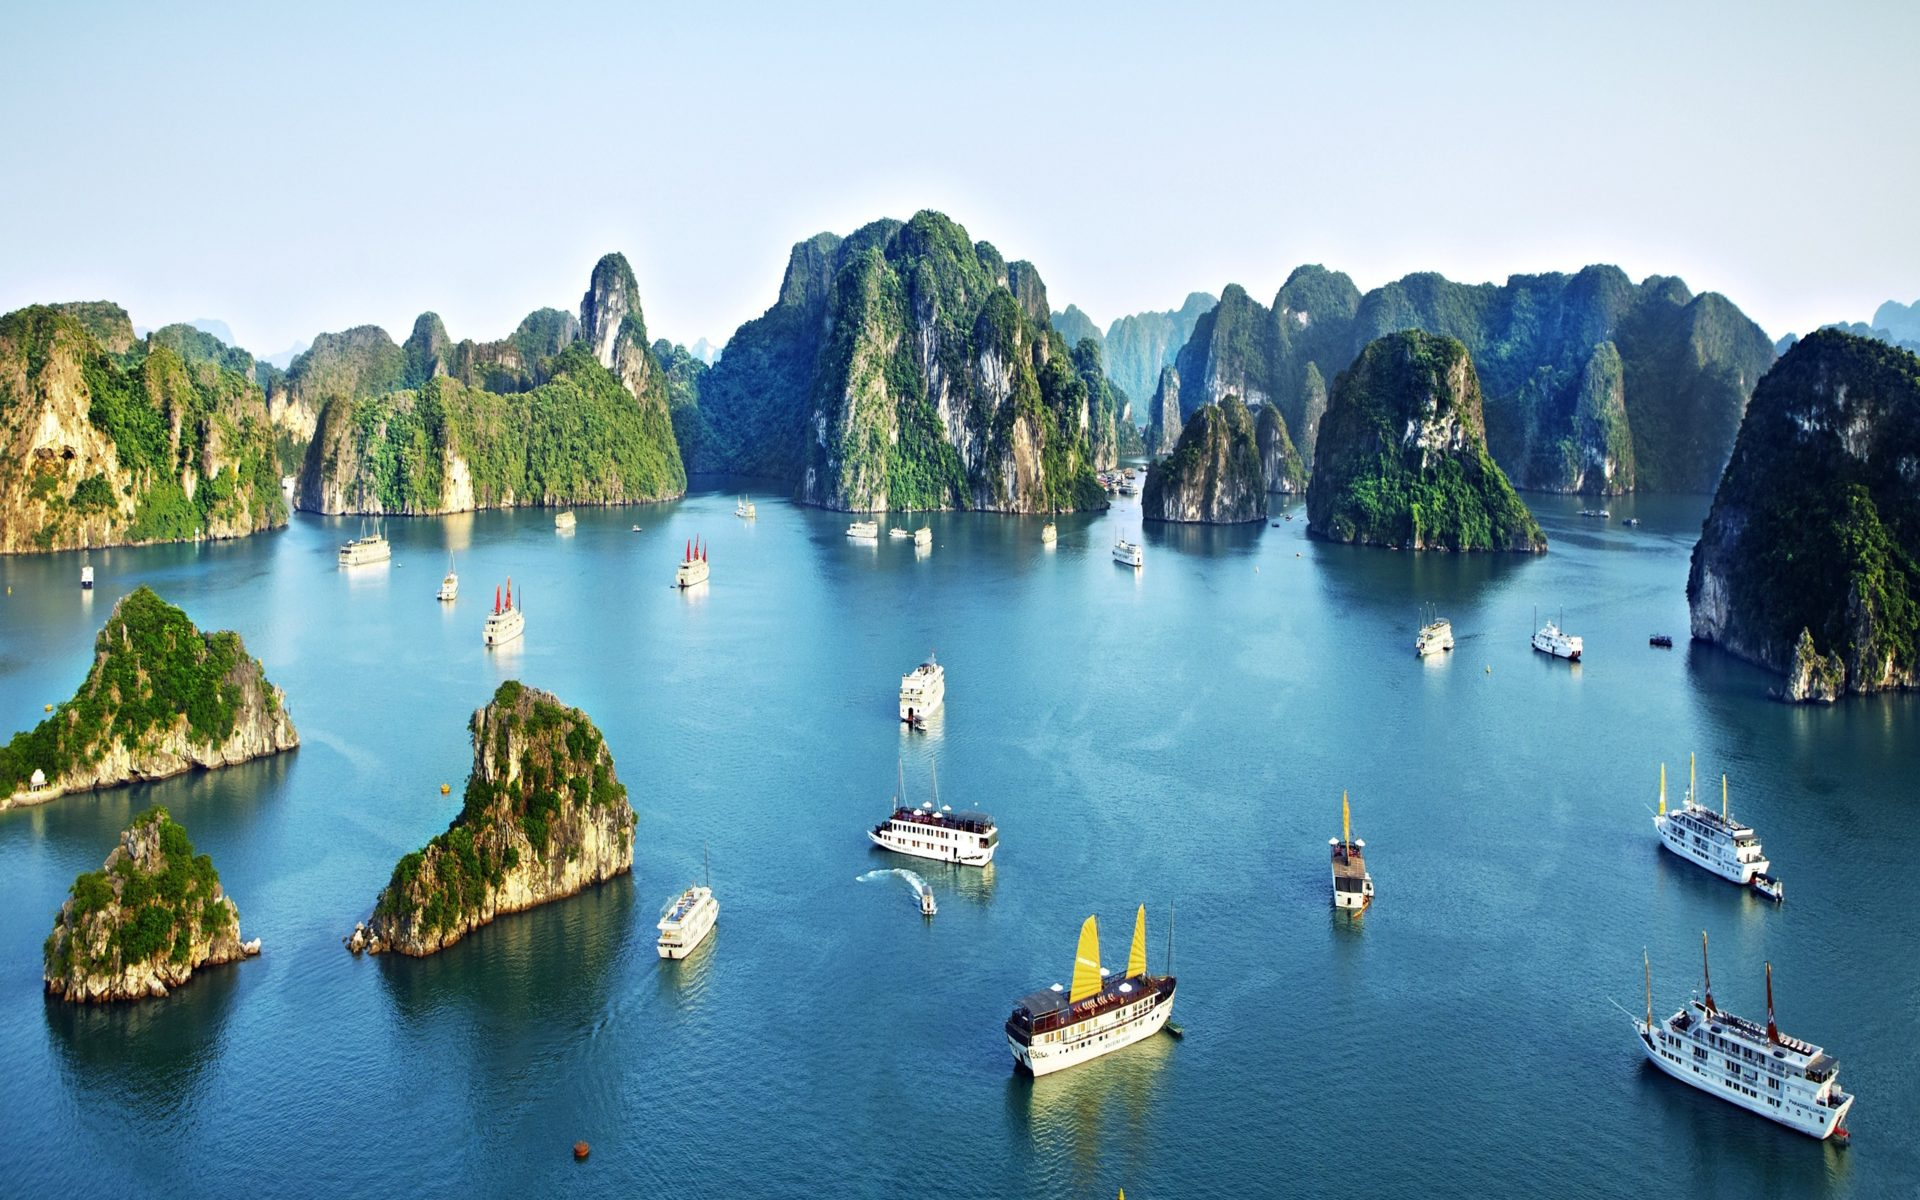 Spain Wallpaper Iphone Related To Halong Bay Vietnam Lonely Planet Wallpapers13 Com